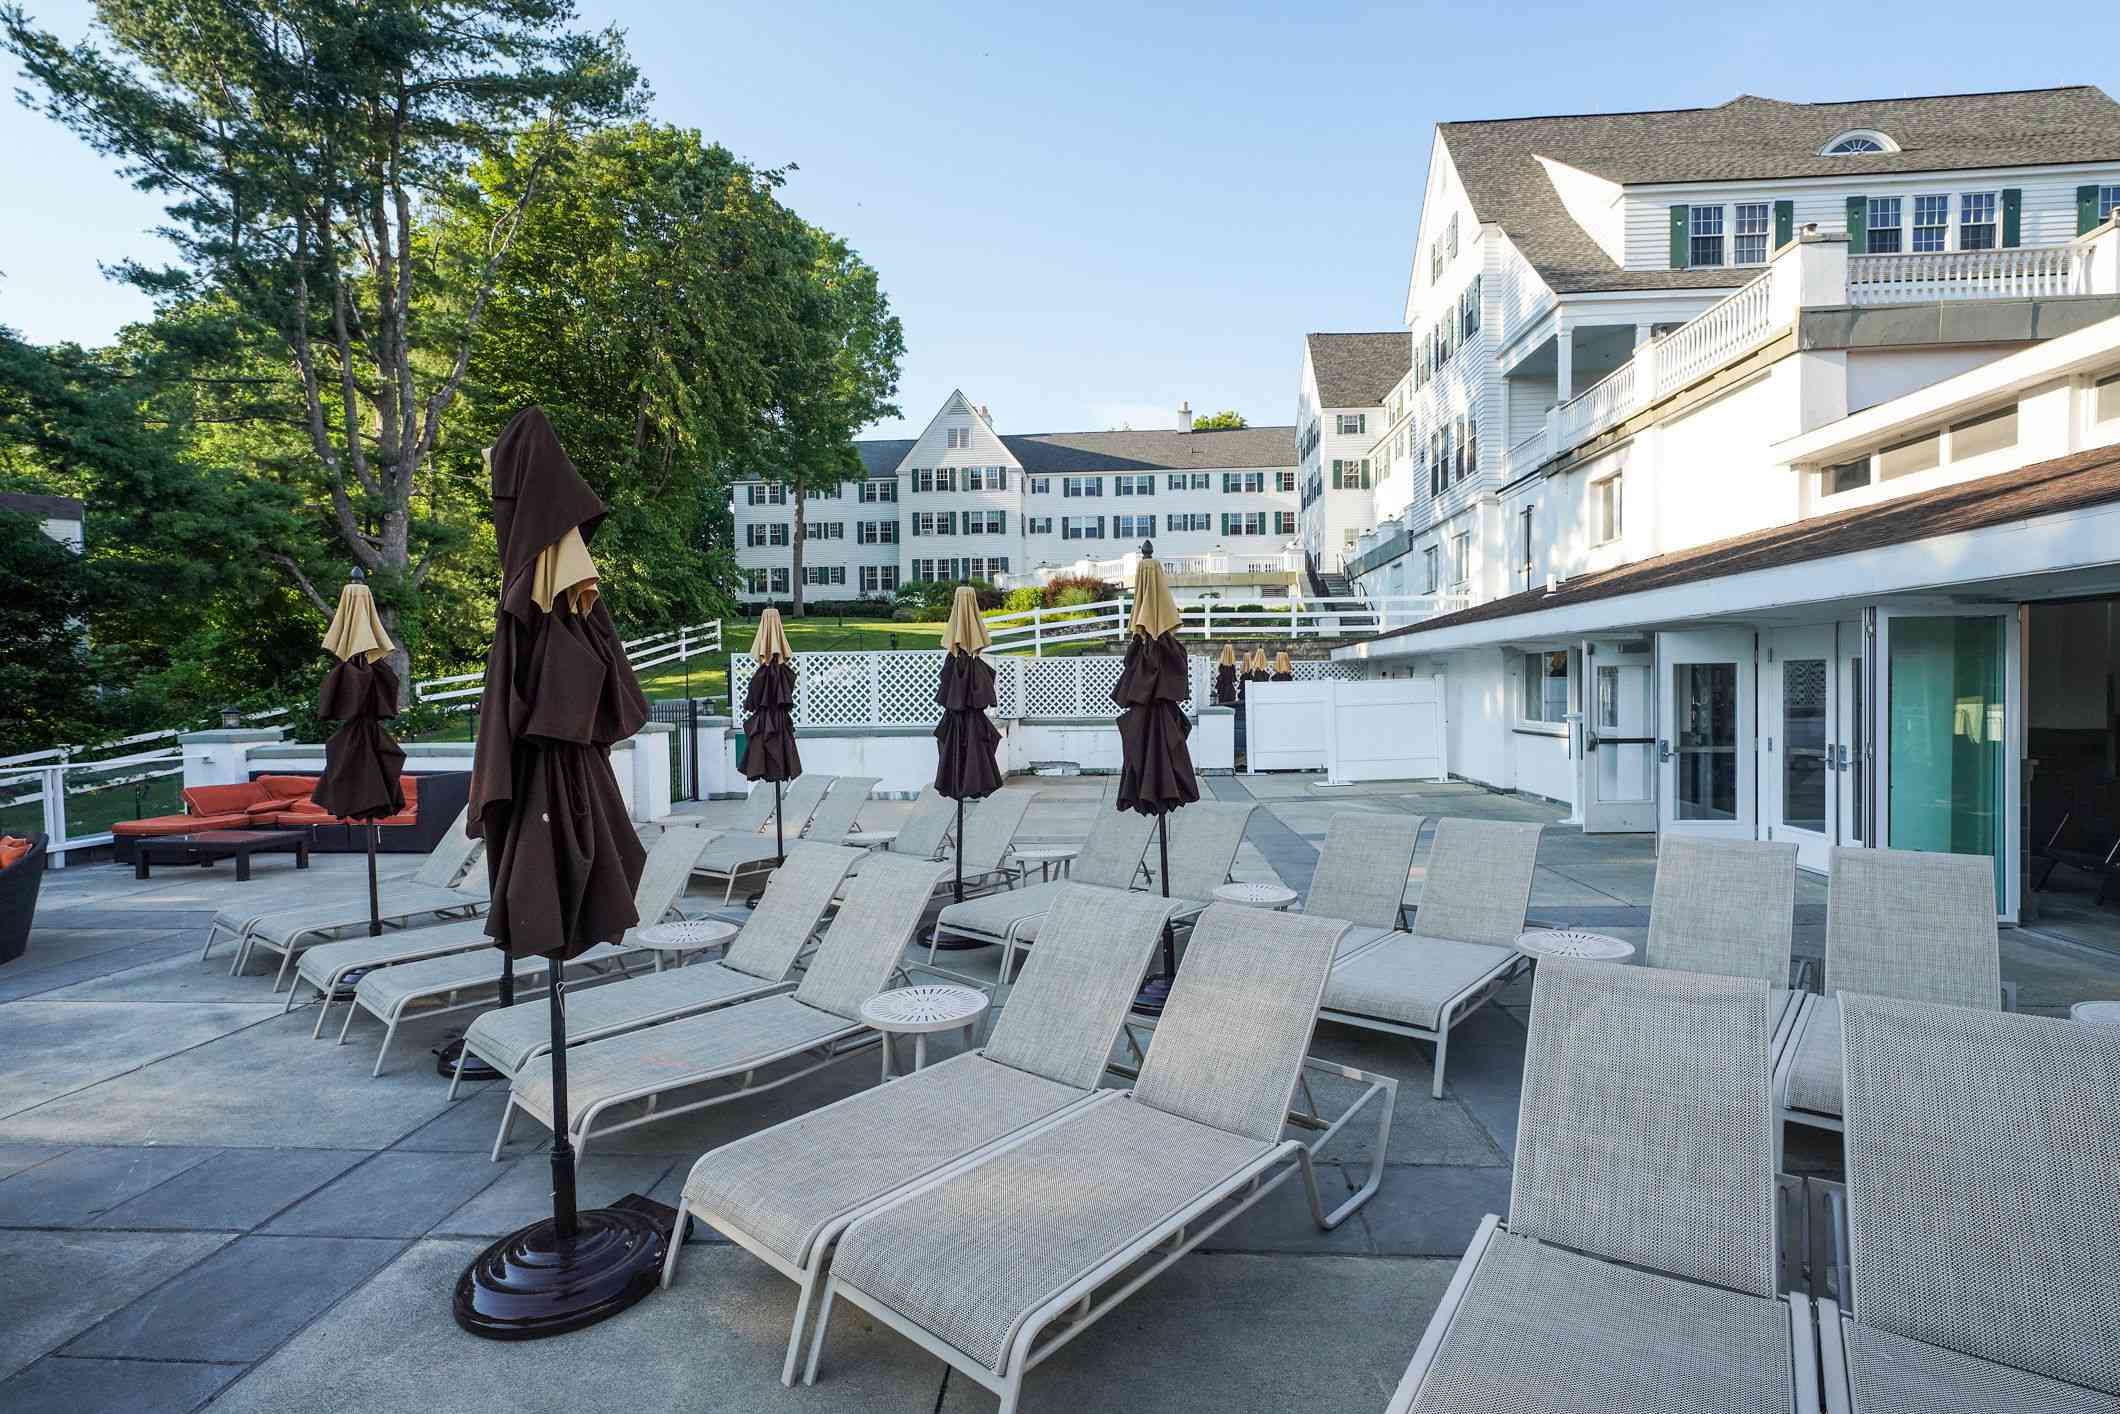 Lounge chairs outside the Sagamore